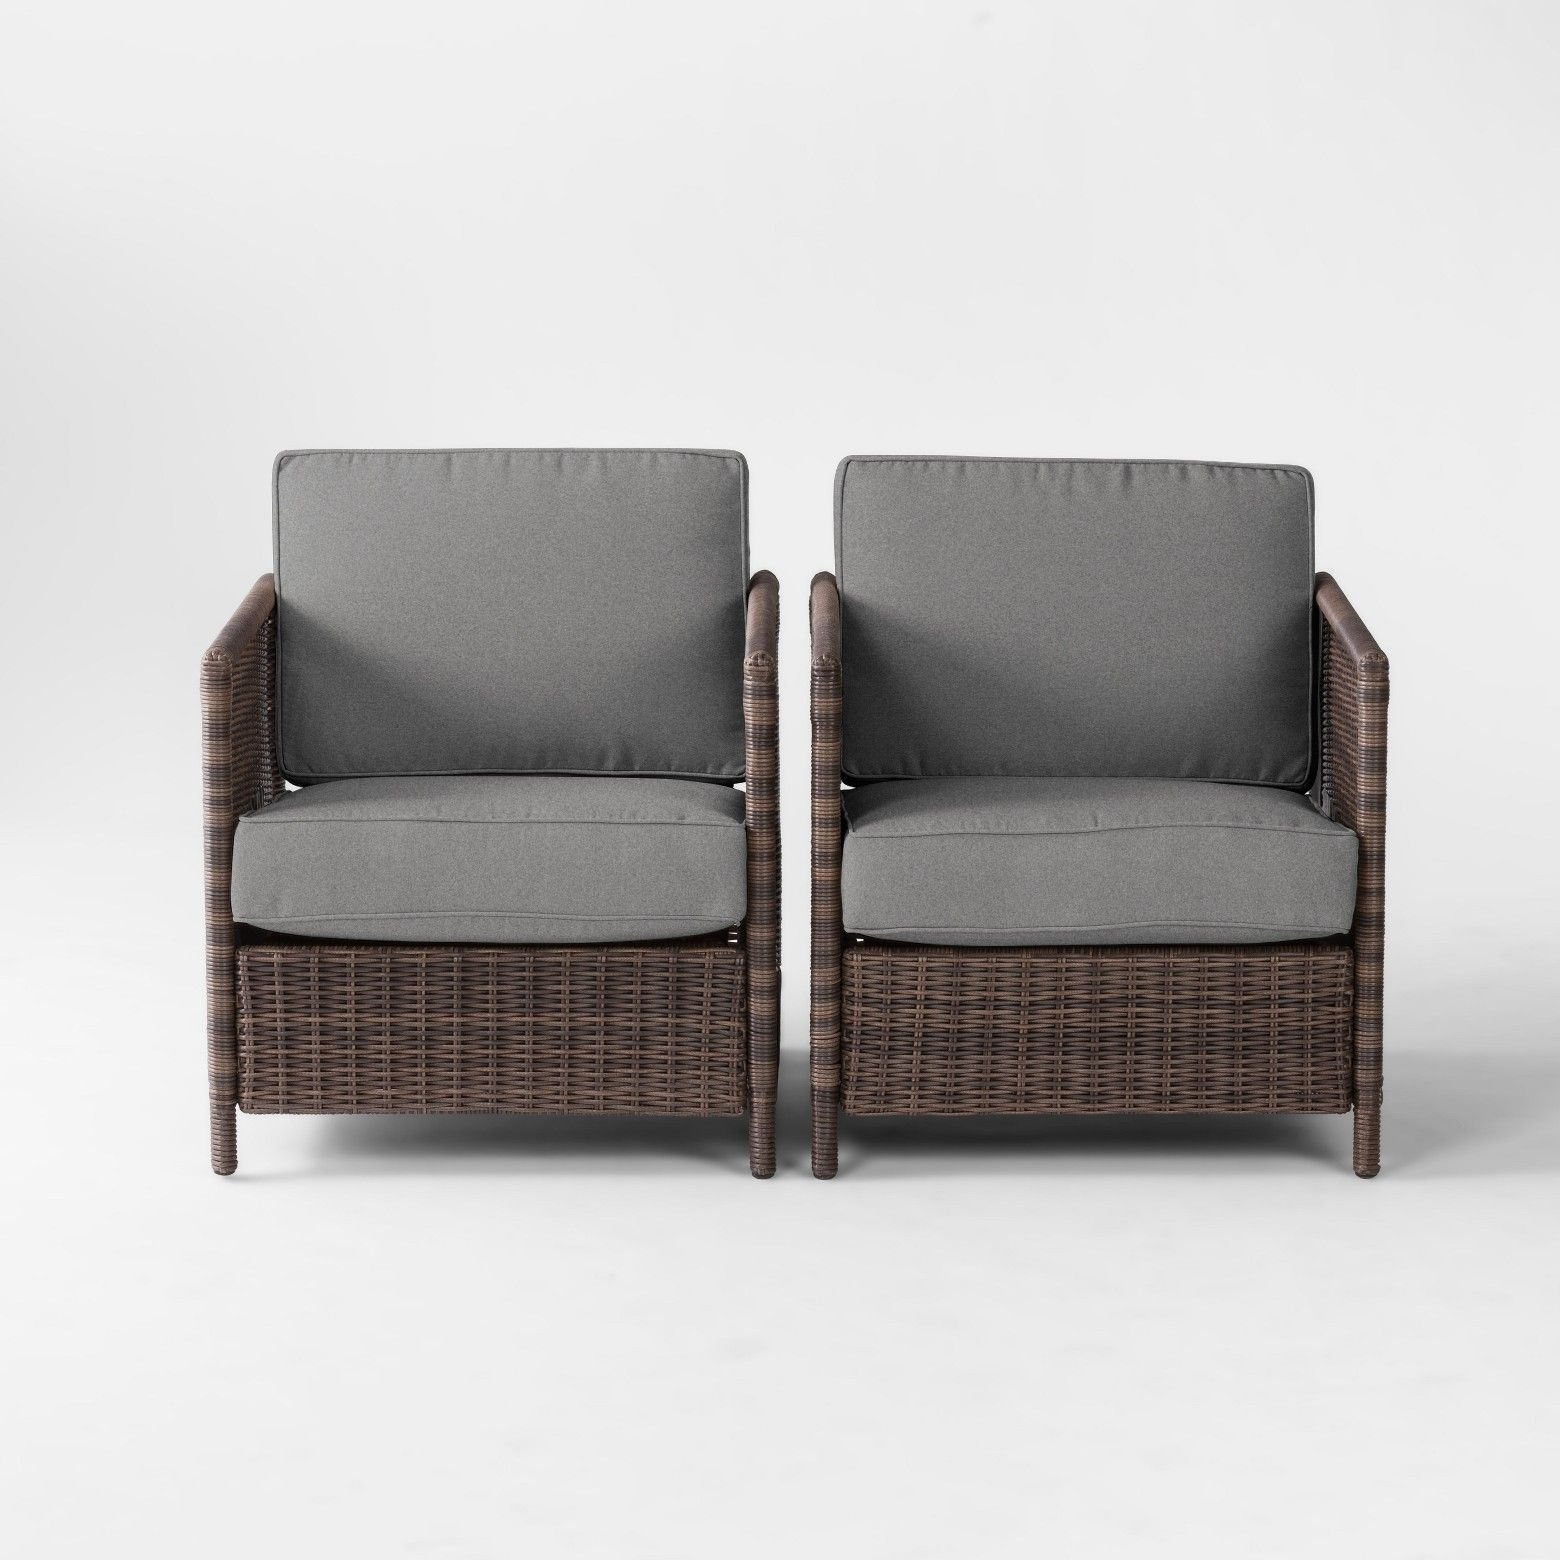 sets tar furniture wicker monterey threshold brilliant patio piece graceful seating of best cool outdoor unique